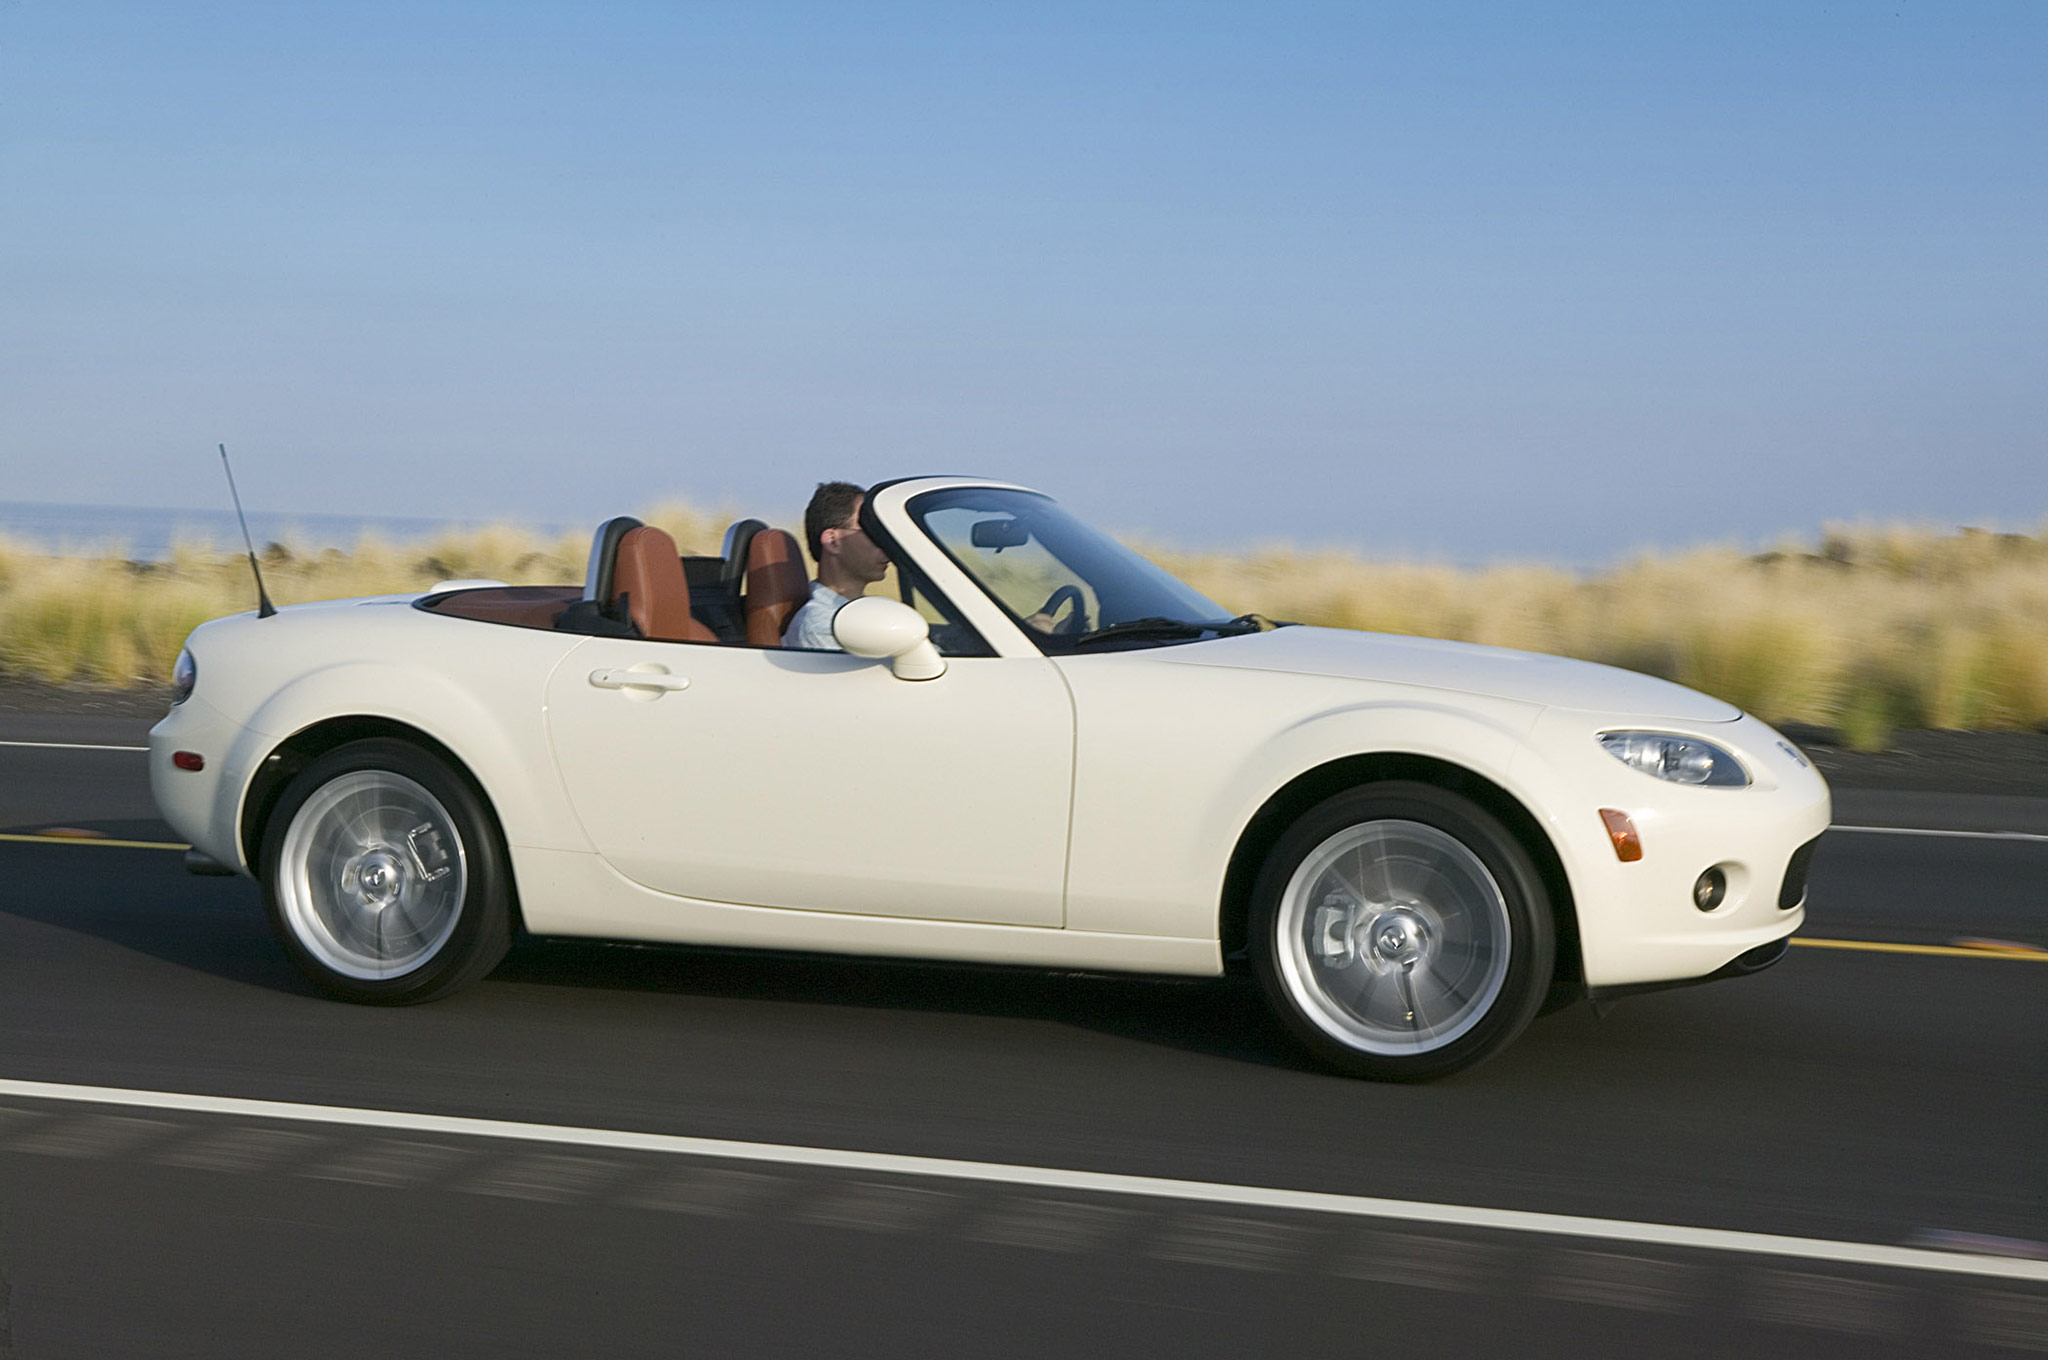 2006 Mazda MX-5 Miata Review